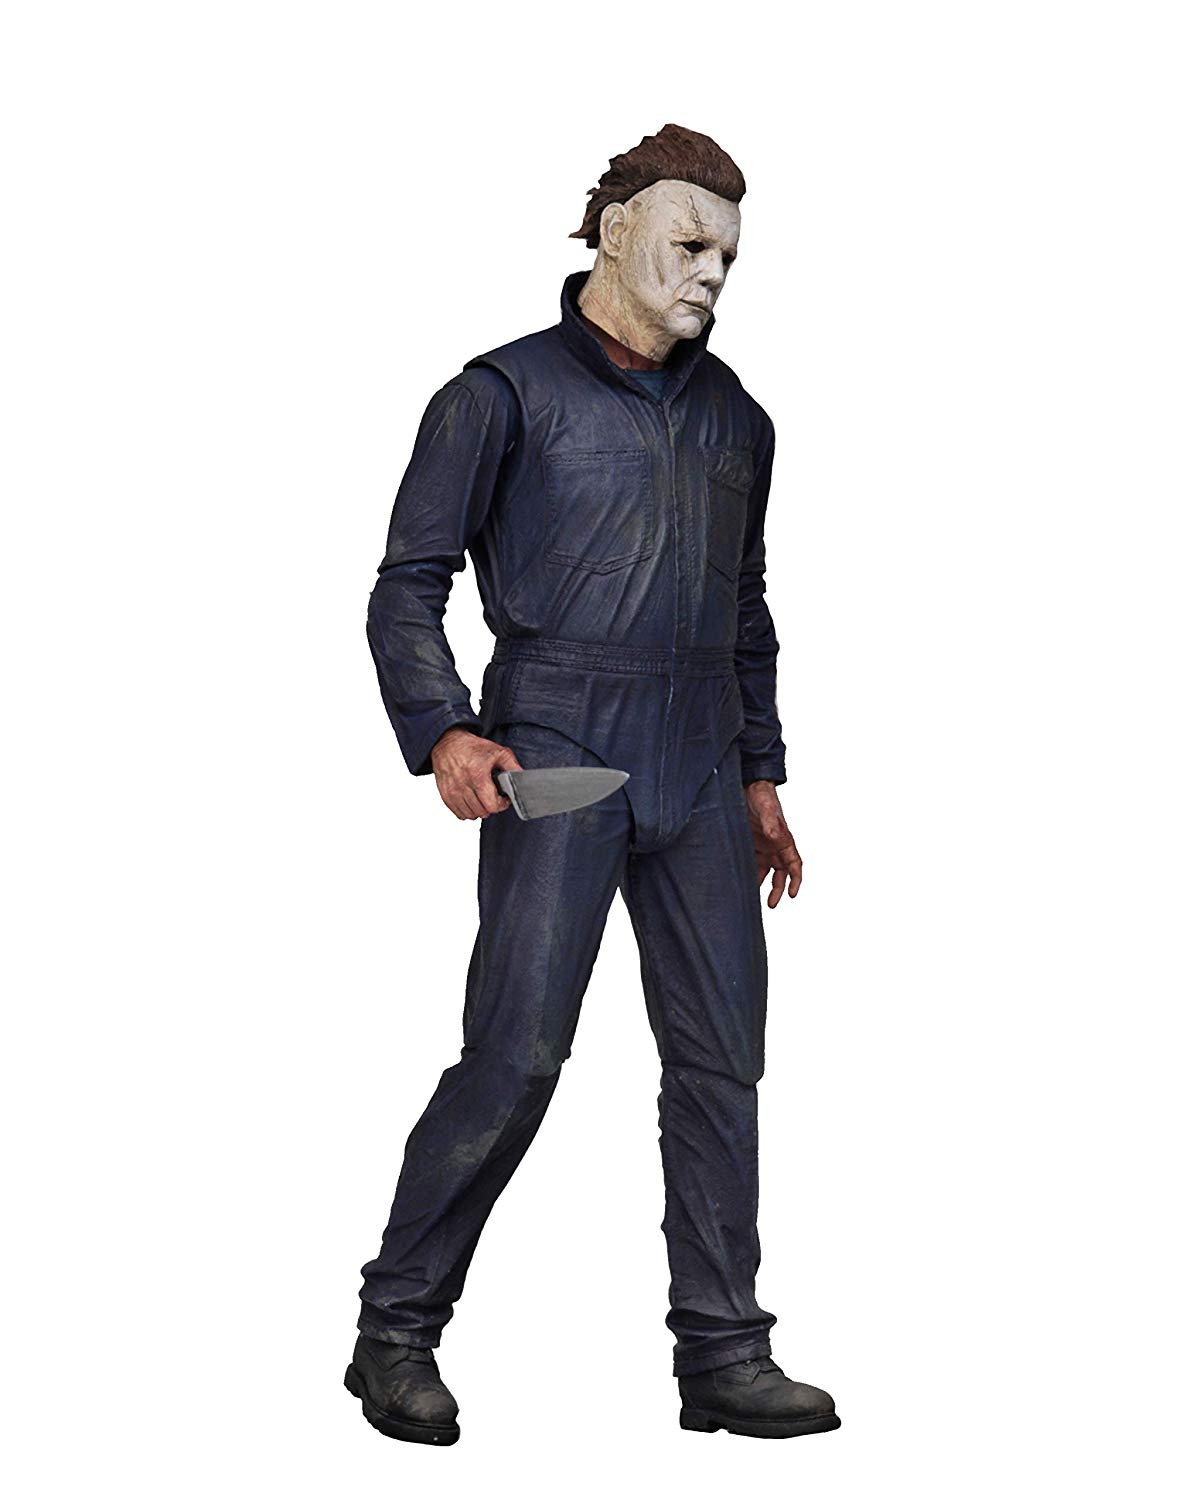 NECA Halloween 2018 Movie Ultimate Michael Myers 18cm Scale Action Figure